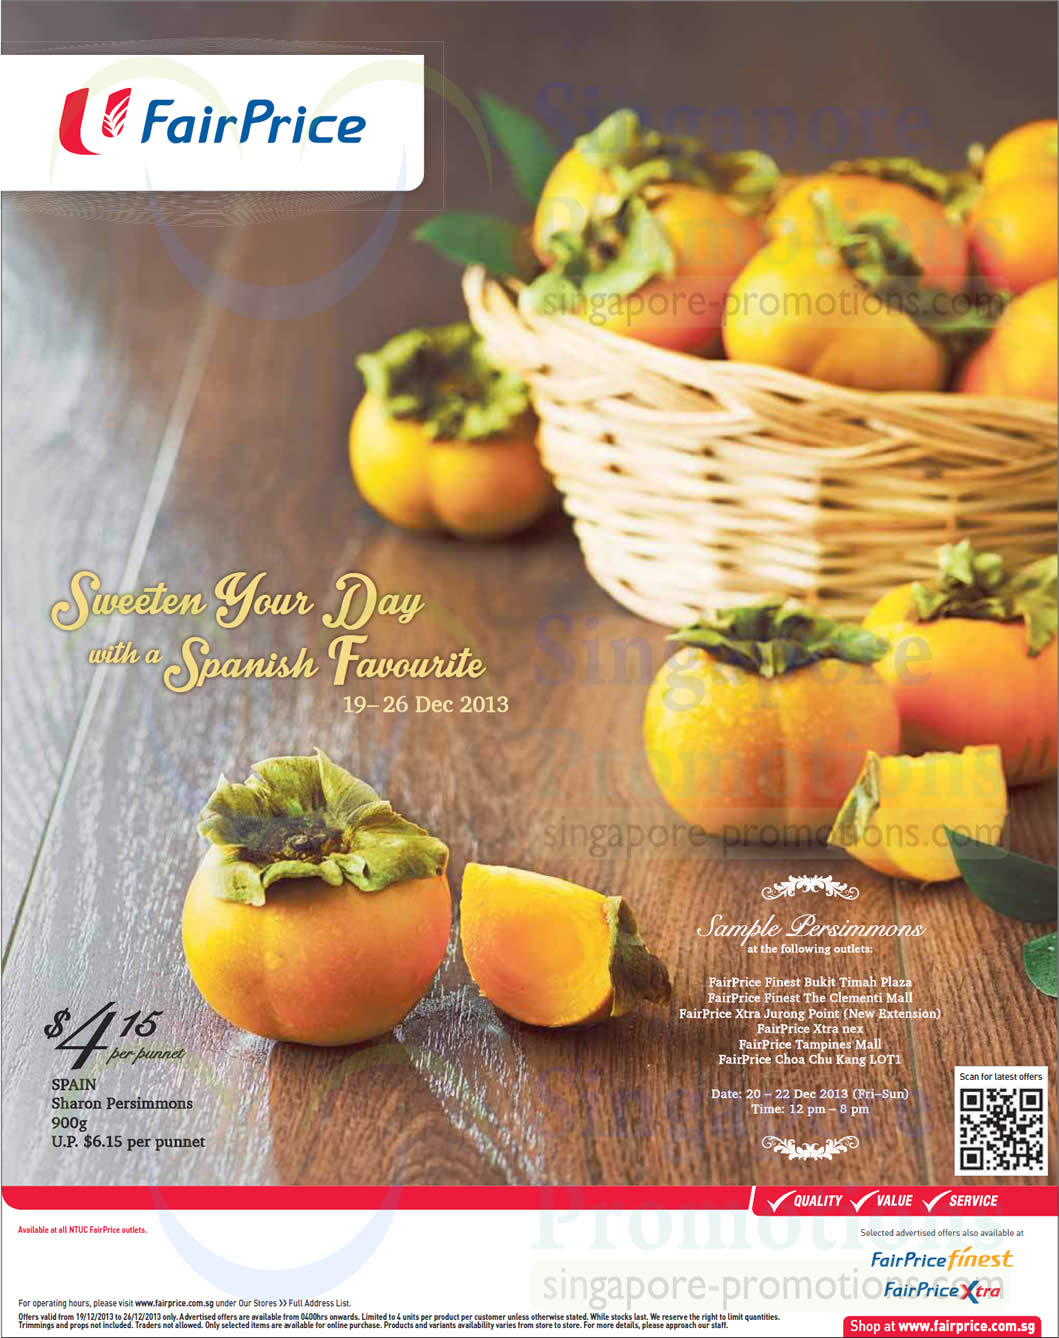 Spain Sharon Persimmons